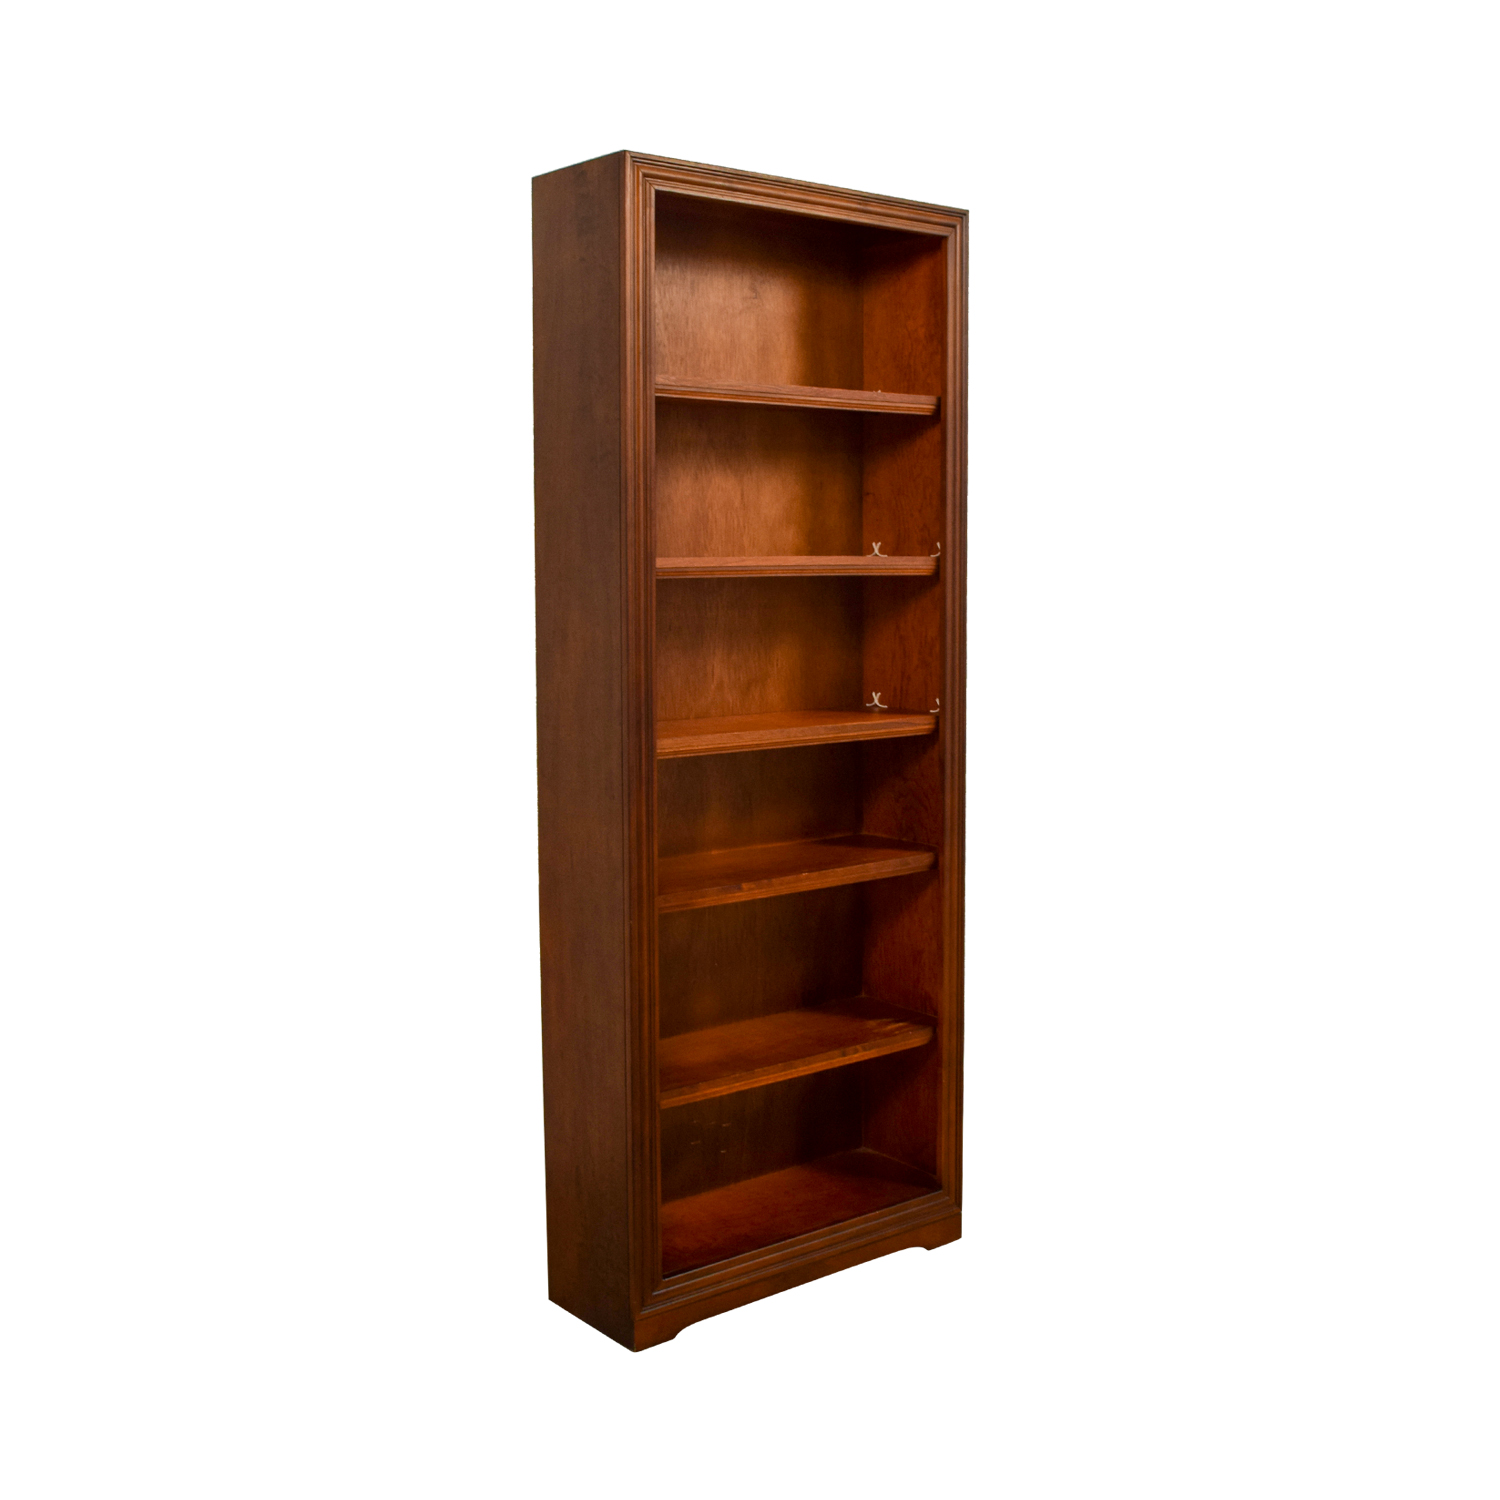 Tall Wood Bookcase for sale